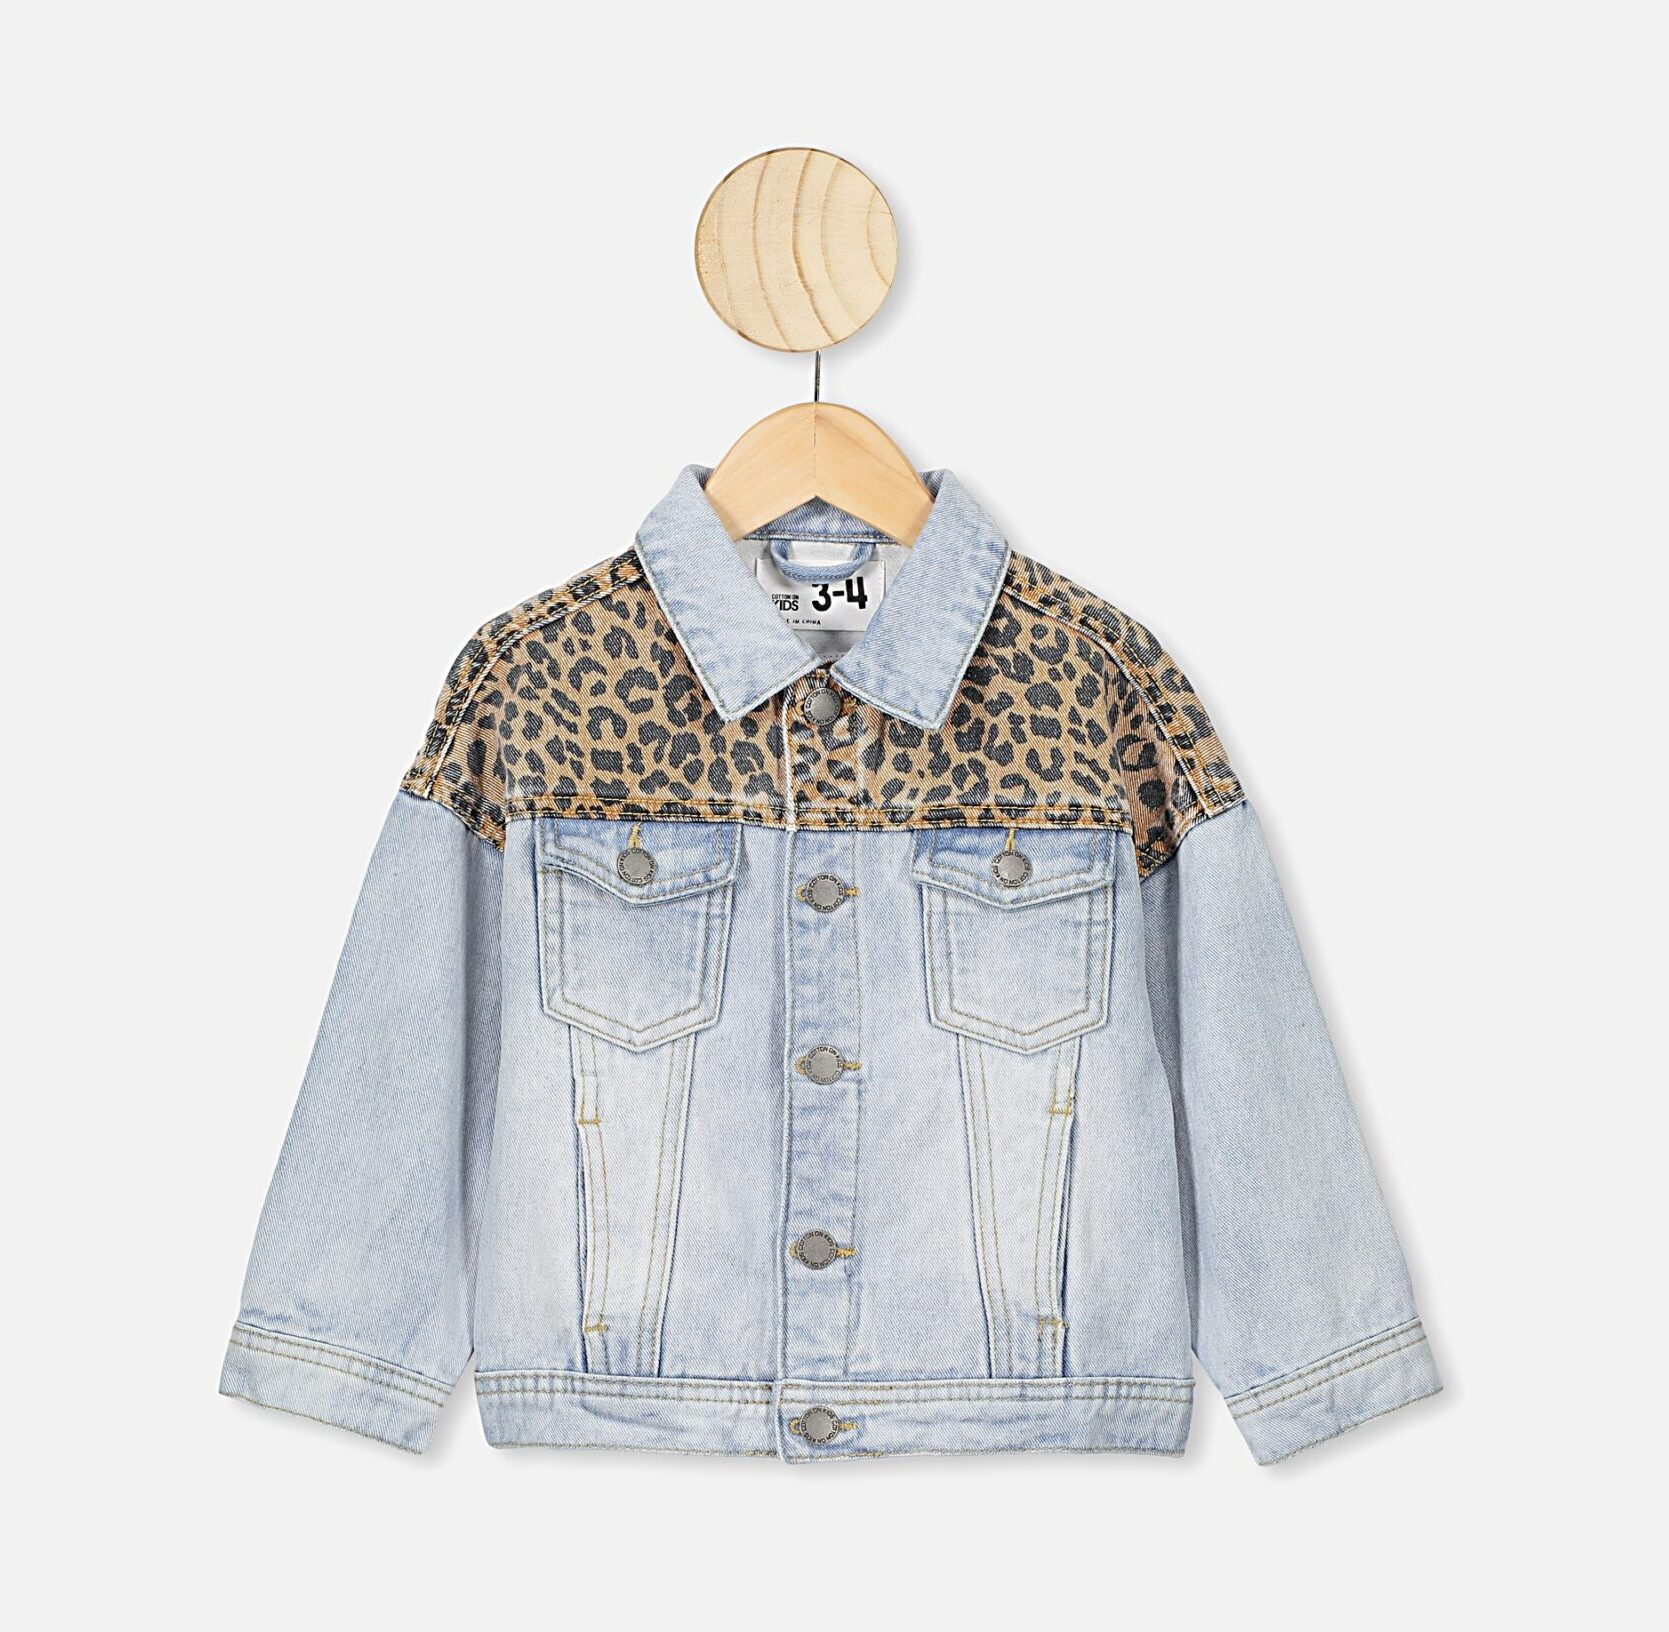 The Shopbop Spring Event + CottonOn Emmy Spliced Trucker Jacket